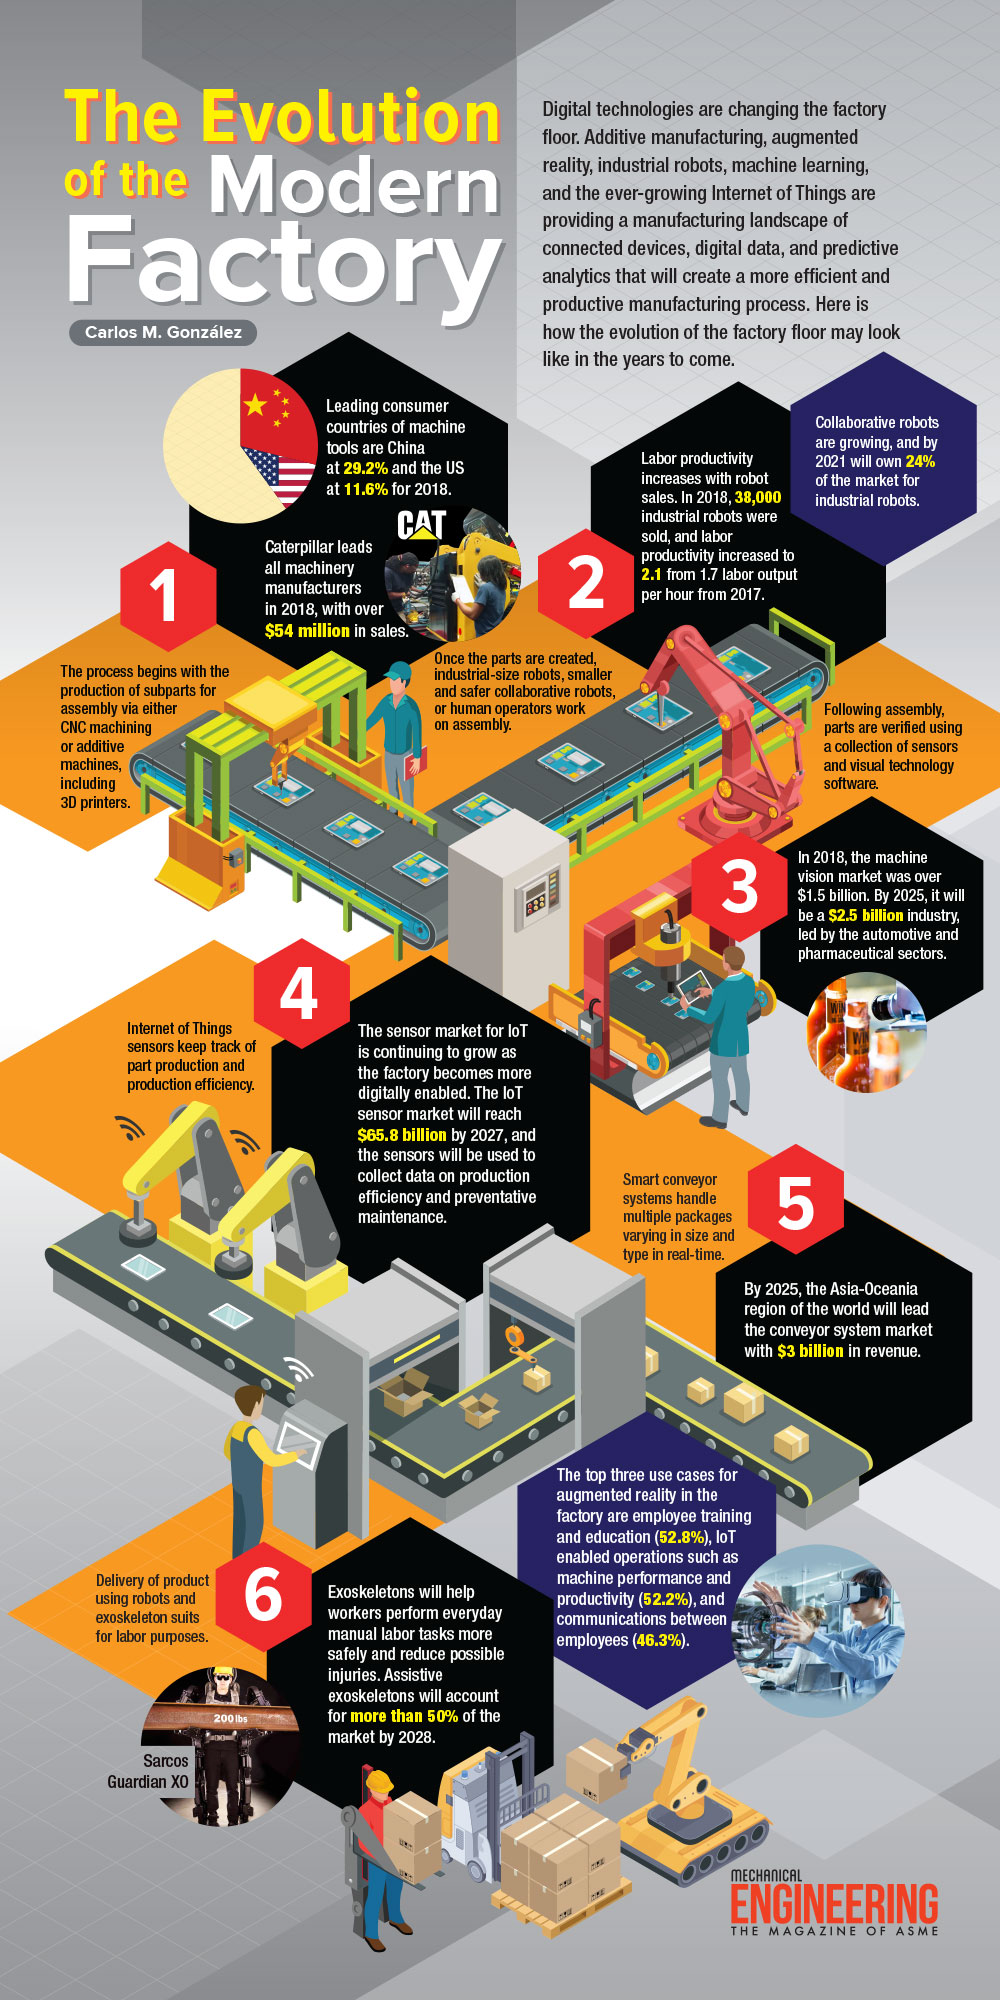 ME Magazine: The Evolution of the Modern Factory infographic